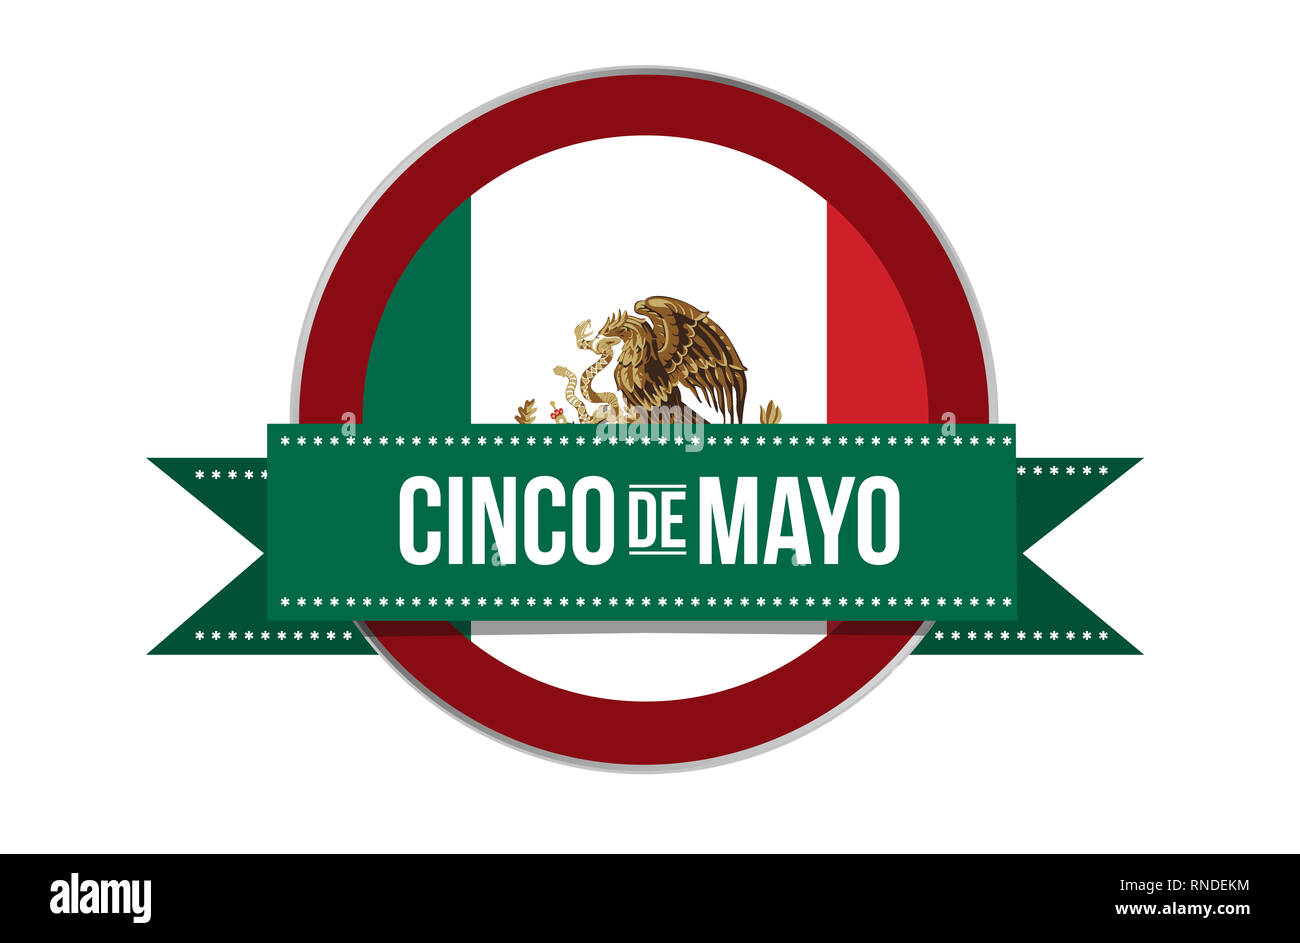 Cinco de Mayo Mexican puebla celebration seal illustration isolated over a white background Stock Photo